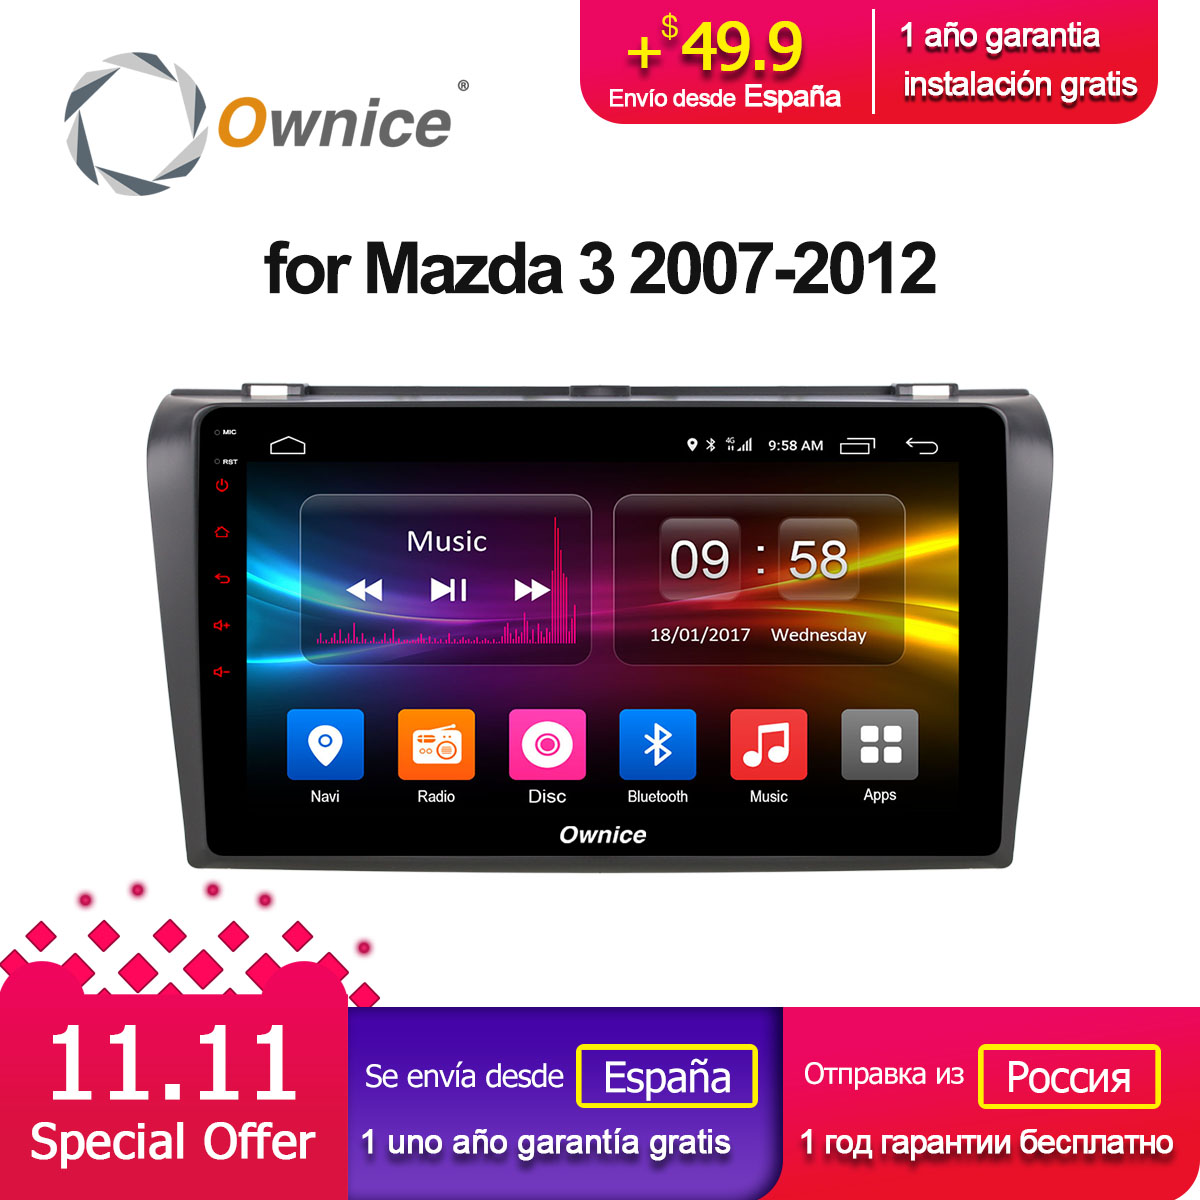 Ownice C500+ G10 Android 8.1 Car DVD Player for Mazda 3 2007 - 2012 GPS Navigation Radio vedio navi 2G RAM support 4G LTEOwnice C500+ G10 Android 8.1 Car DVD Player for Mazda 3 2007 - 2012 GPS Navigation Radio vedio navi 2G RAM support 4G LTE